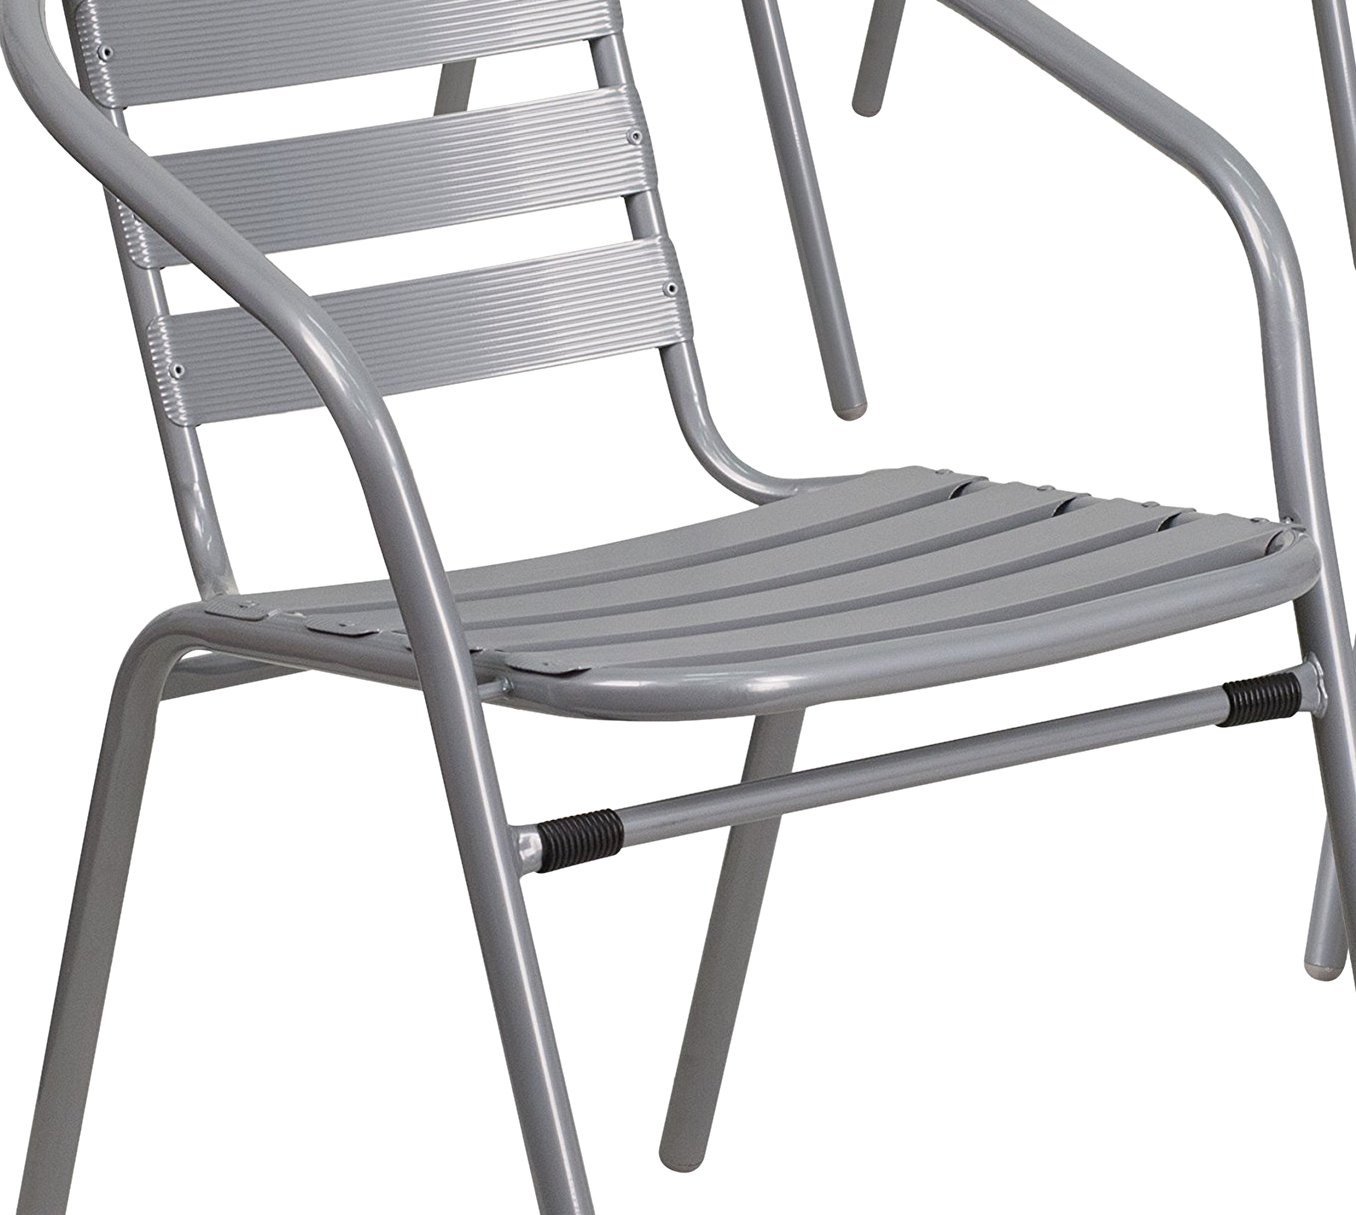 Flash Furniture 4 Pk. Silver Metal Restaurant Stack Chair with Aluminum Slats by Flash Furniture (Image #6)